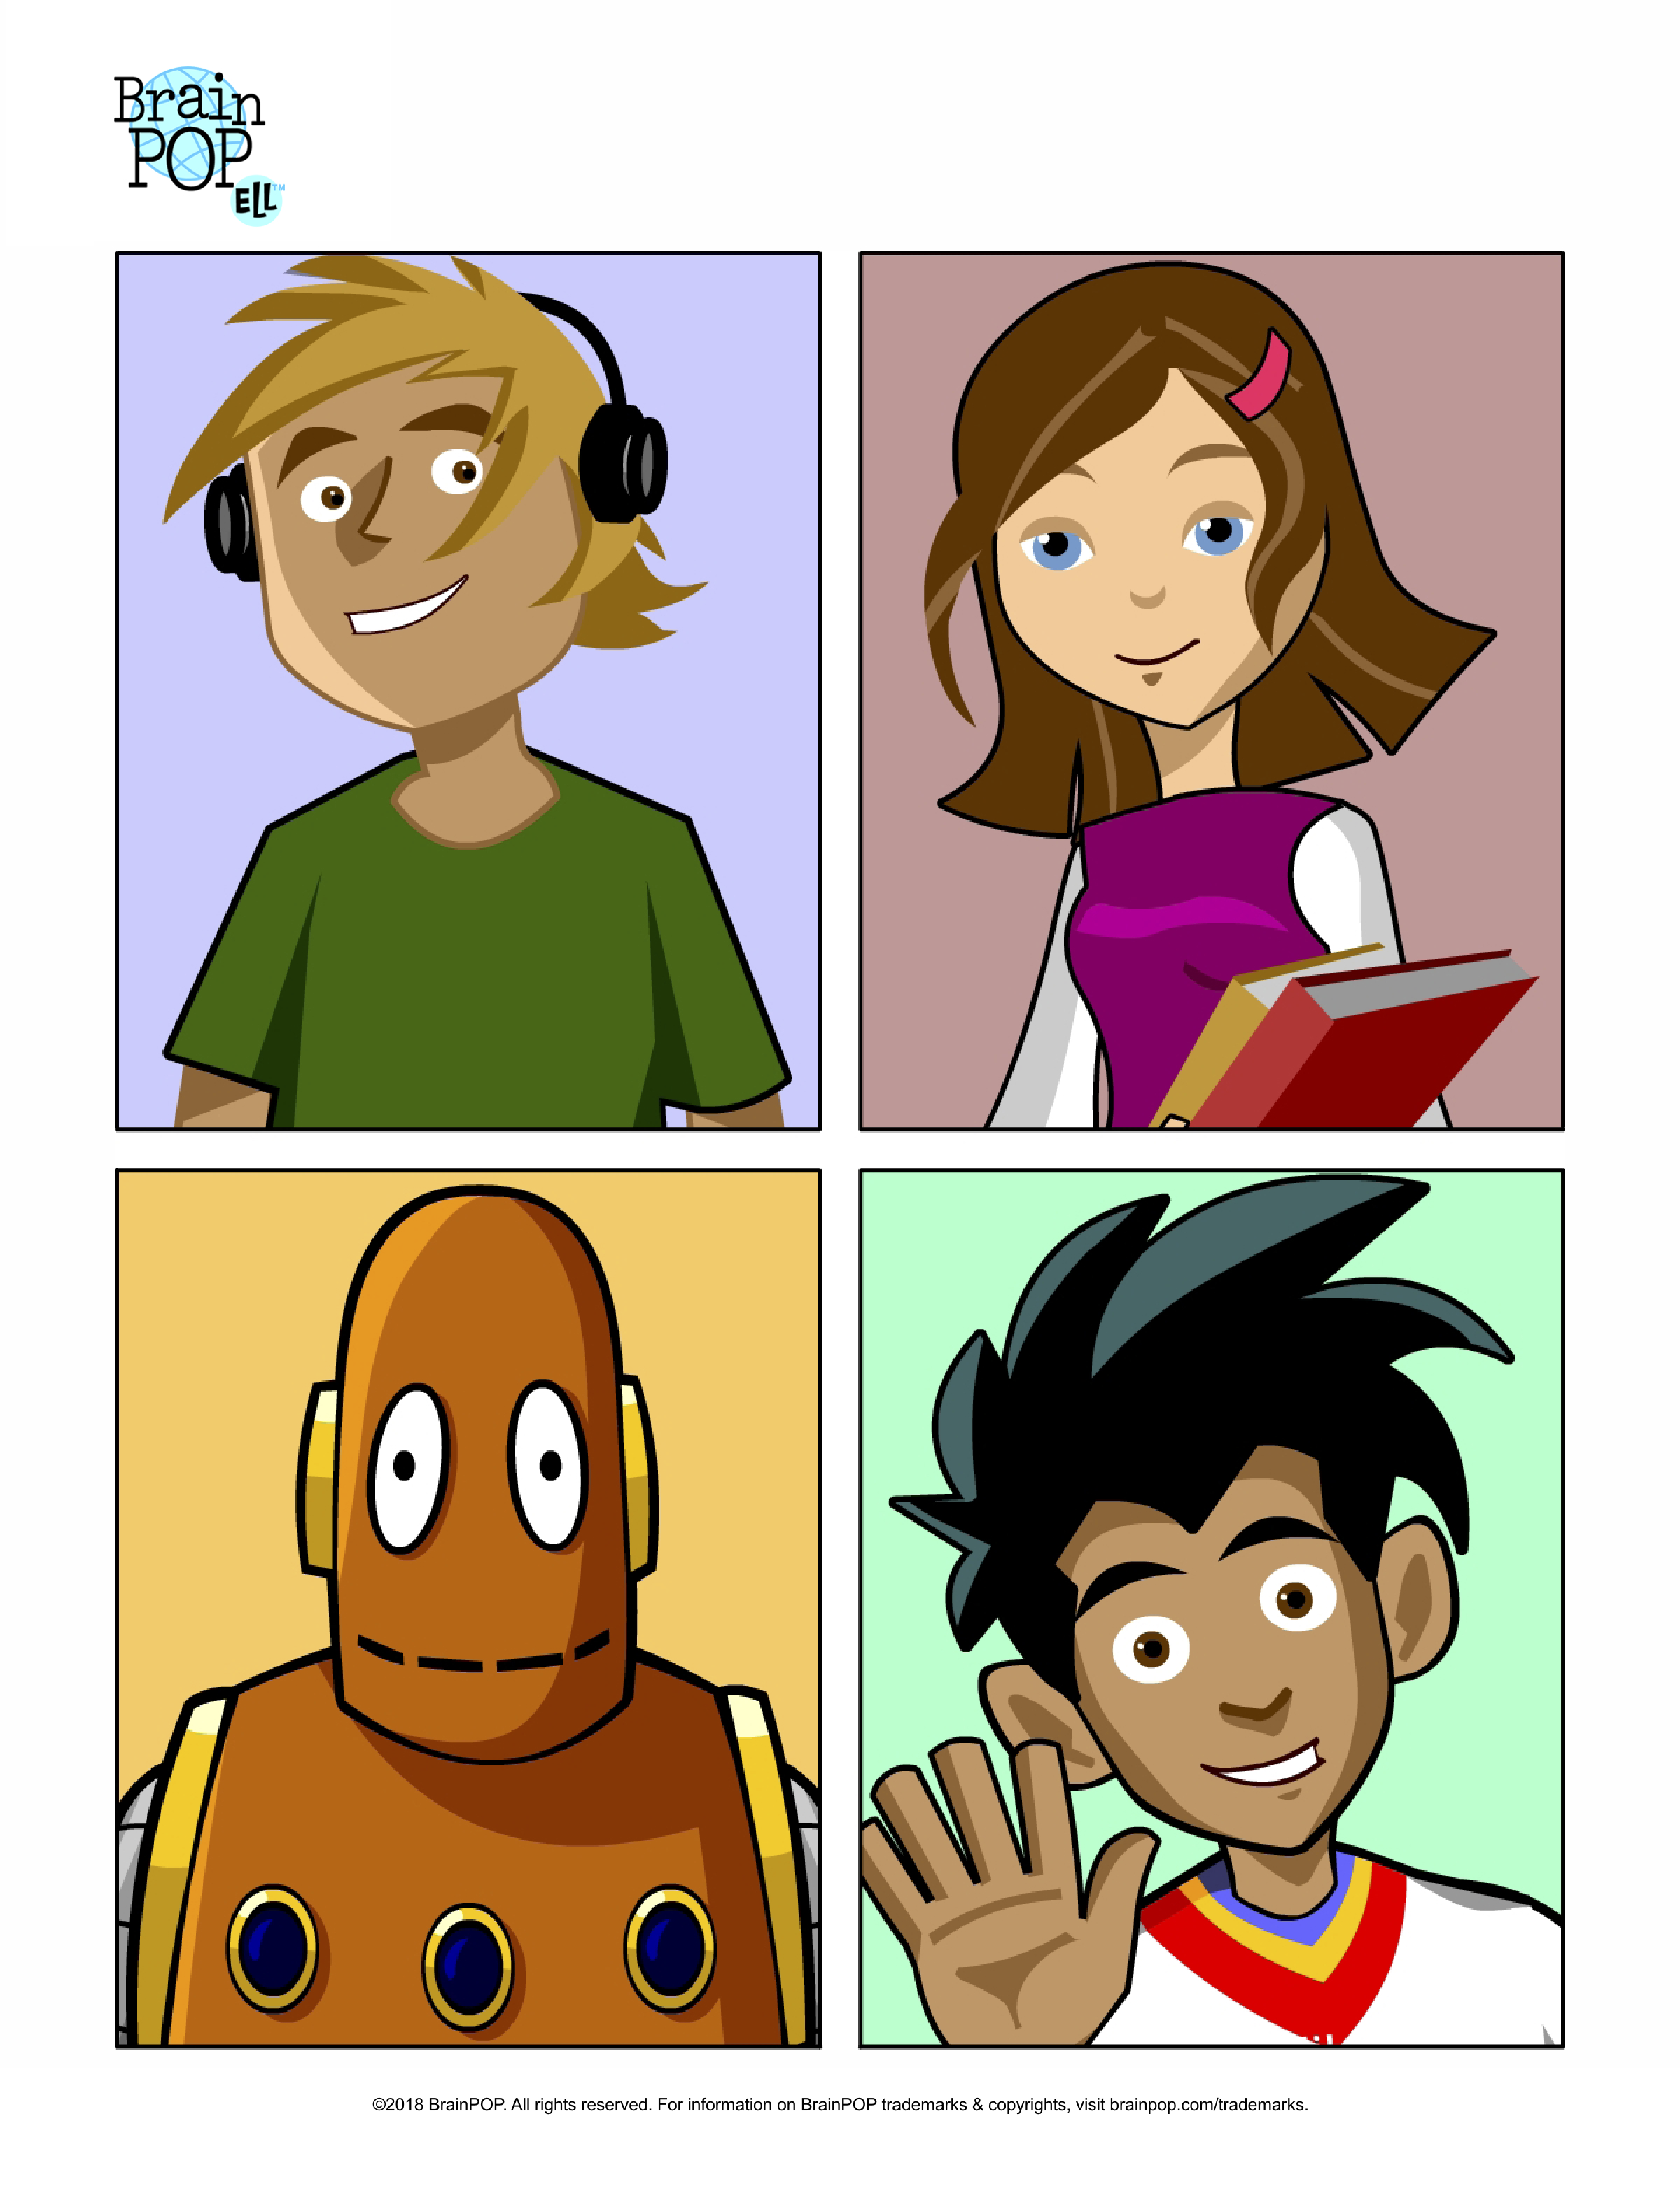 BrainPOP ELL Handout: Meet the Characters!